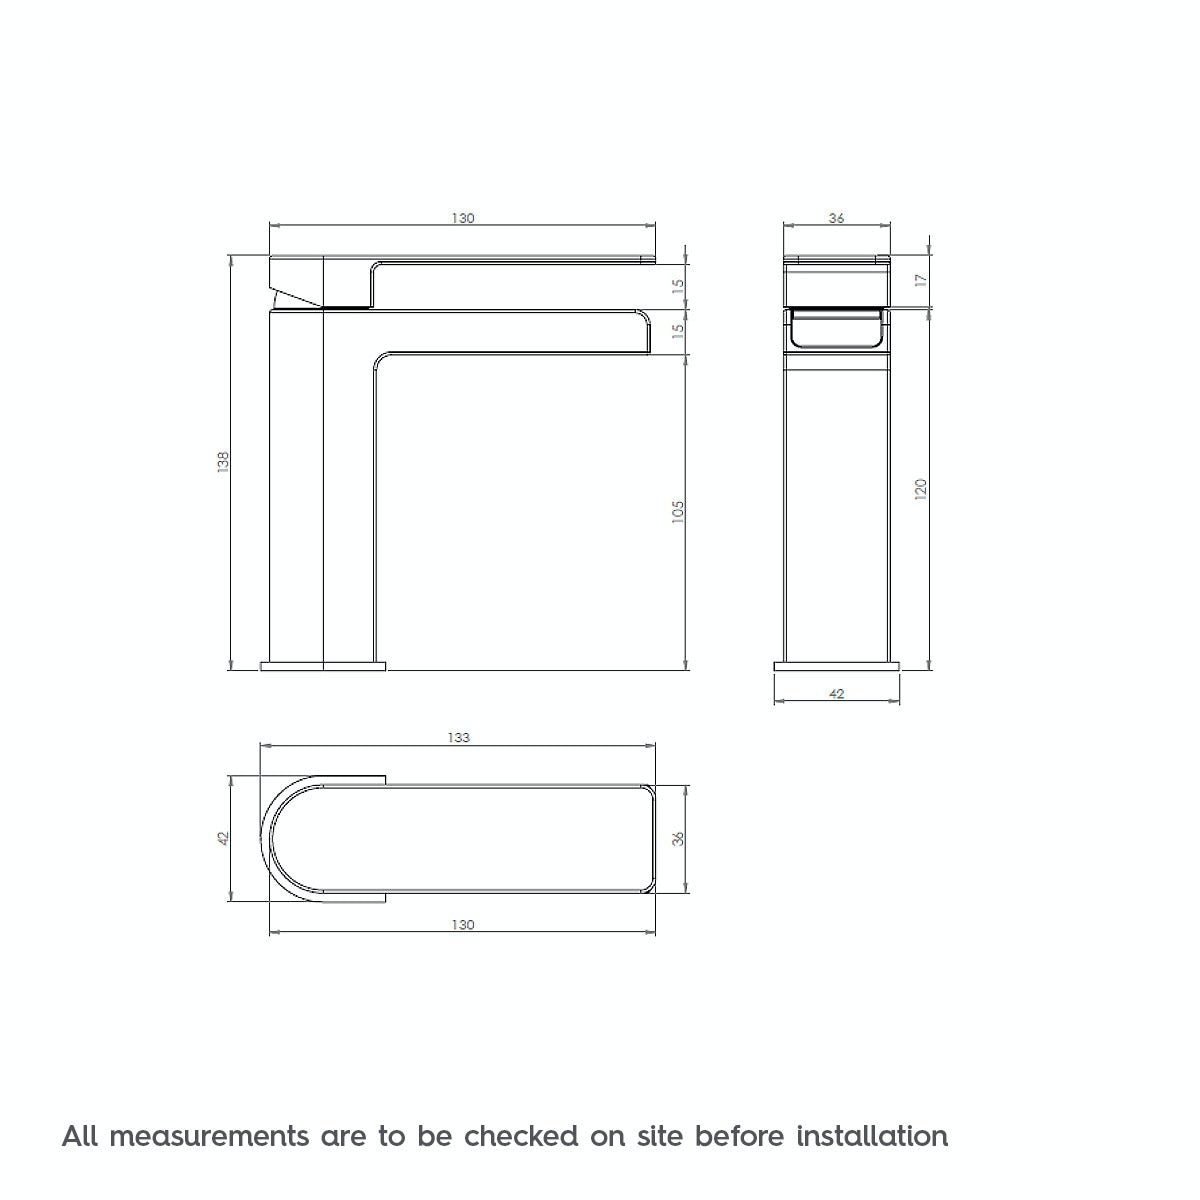 Dimensions for Mode Cooper basin mixer tap